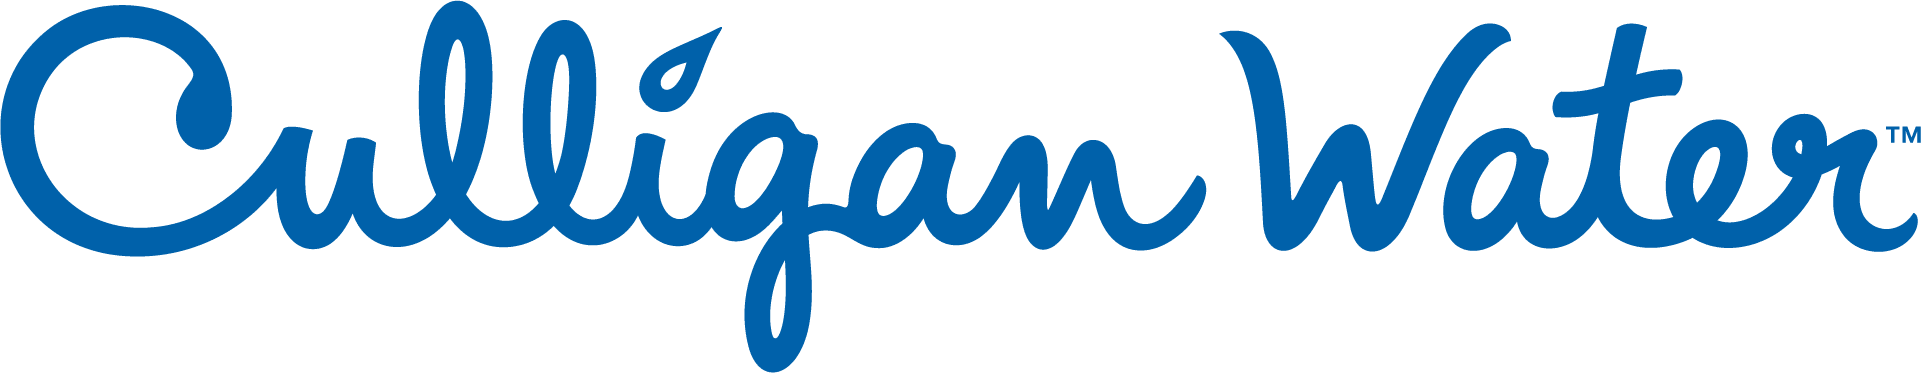 Culligan Water of Topeka